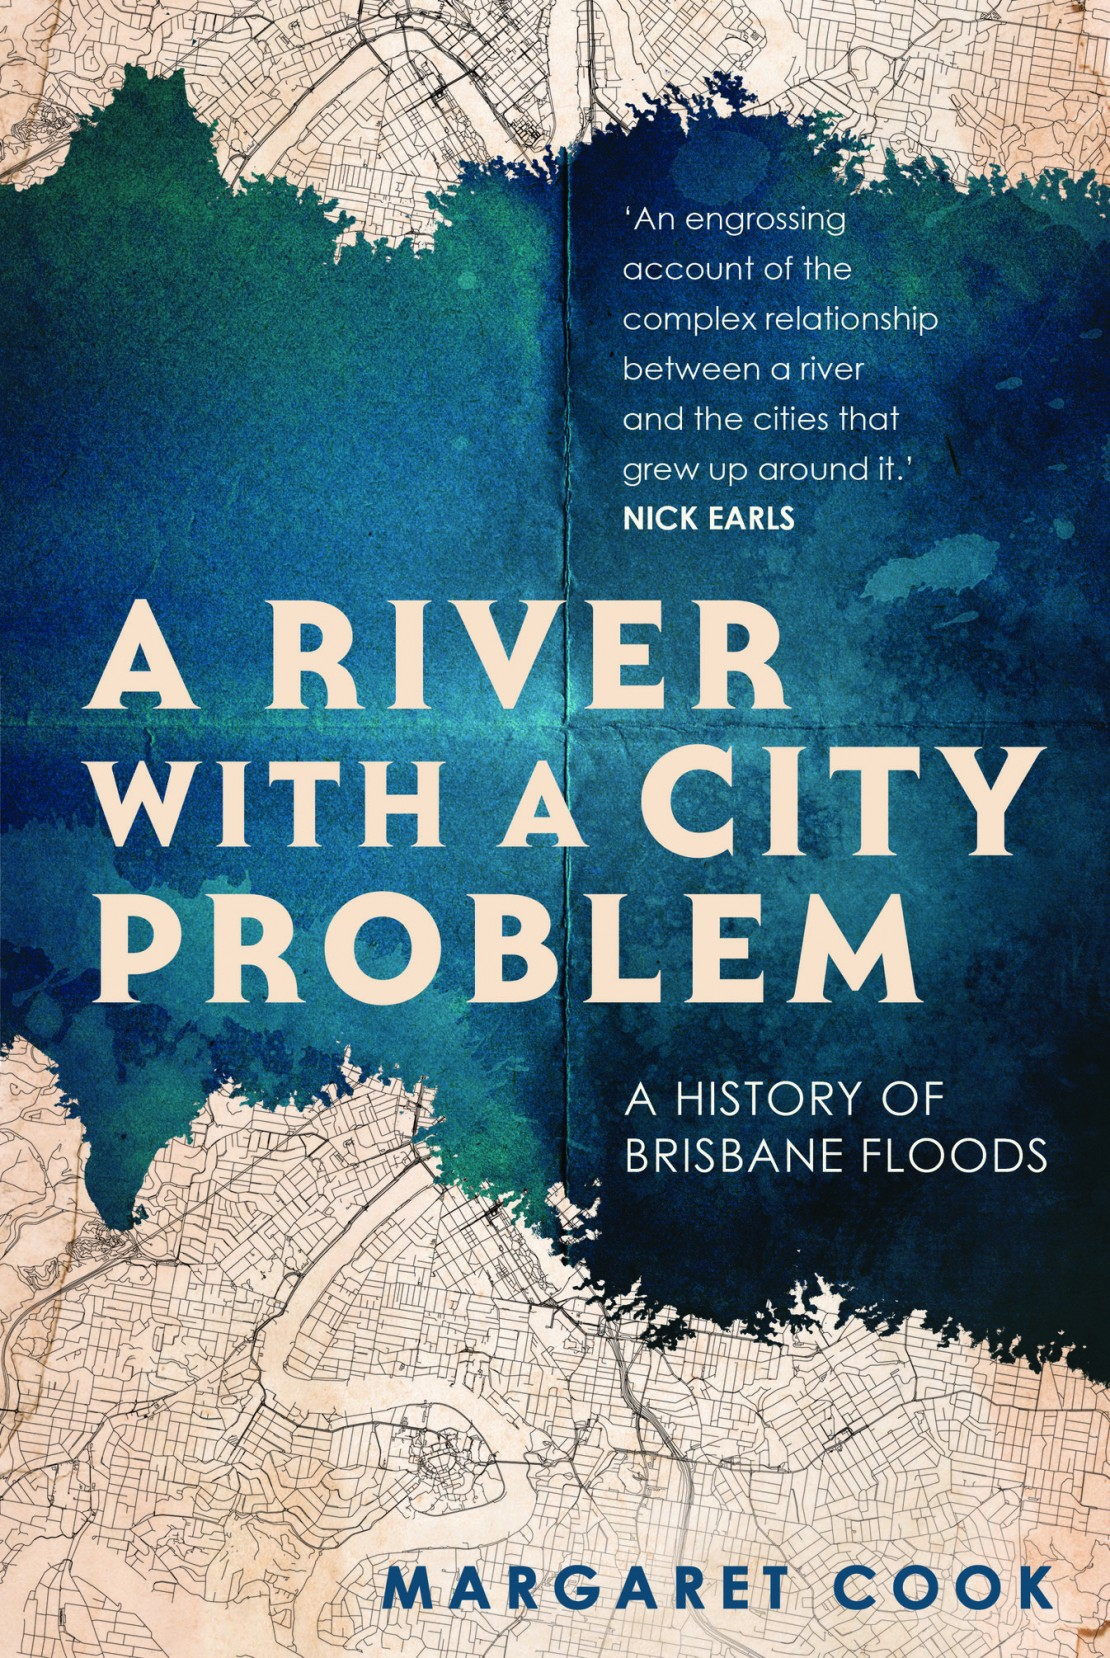 A River with a City Problem by Margaret Cook